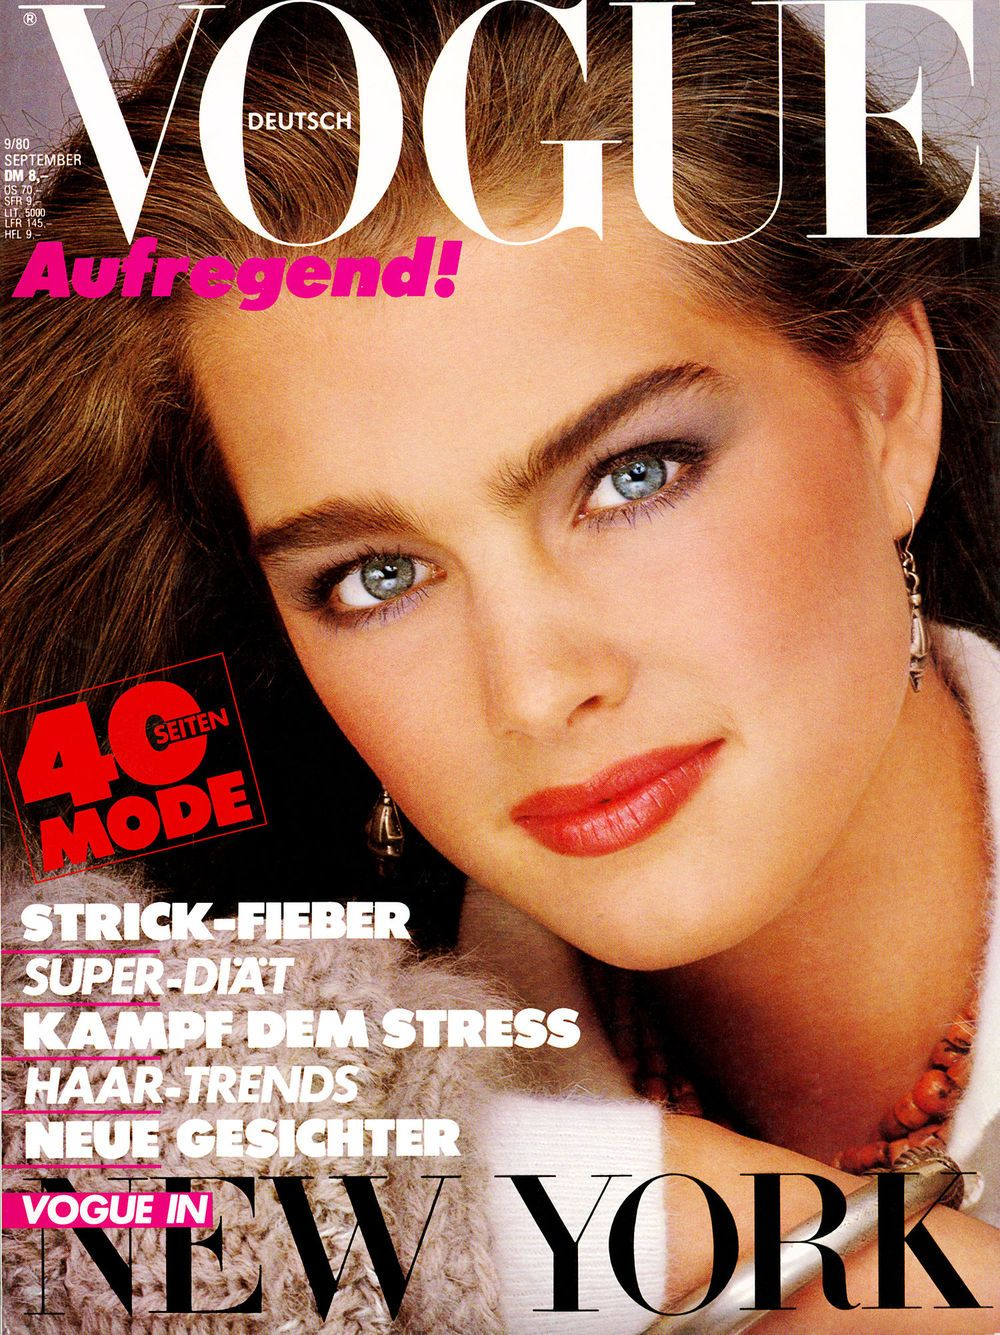 Brooke Shields Throughout the Years in Vogue